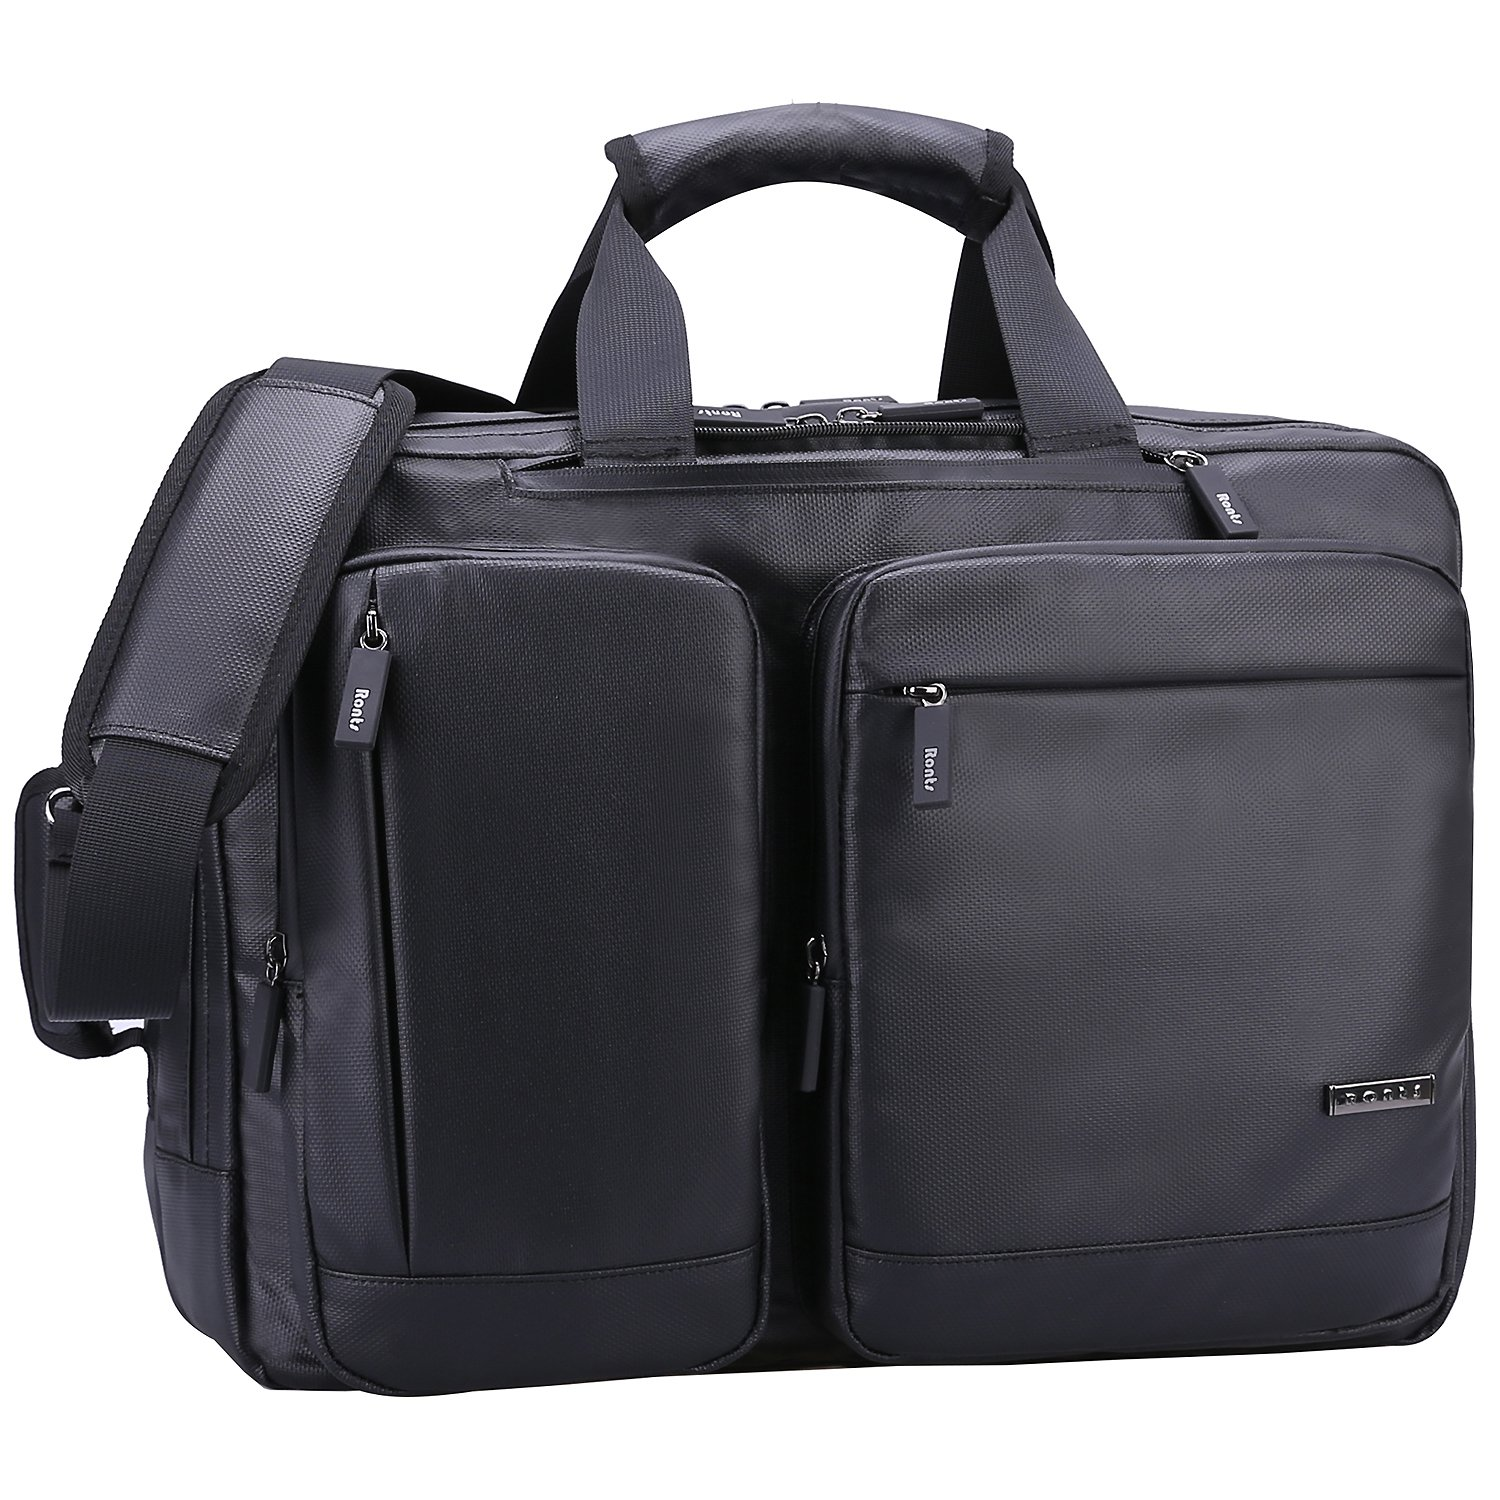 Ronts Convertible Briefcase Backpack Multifunctional Waterproof 15.6 Inch Laptop Case 1-2 Days Portable Travel Business Messenger Bag for Men/Women, Black